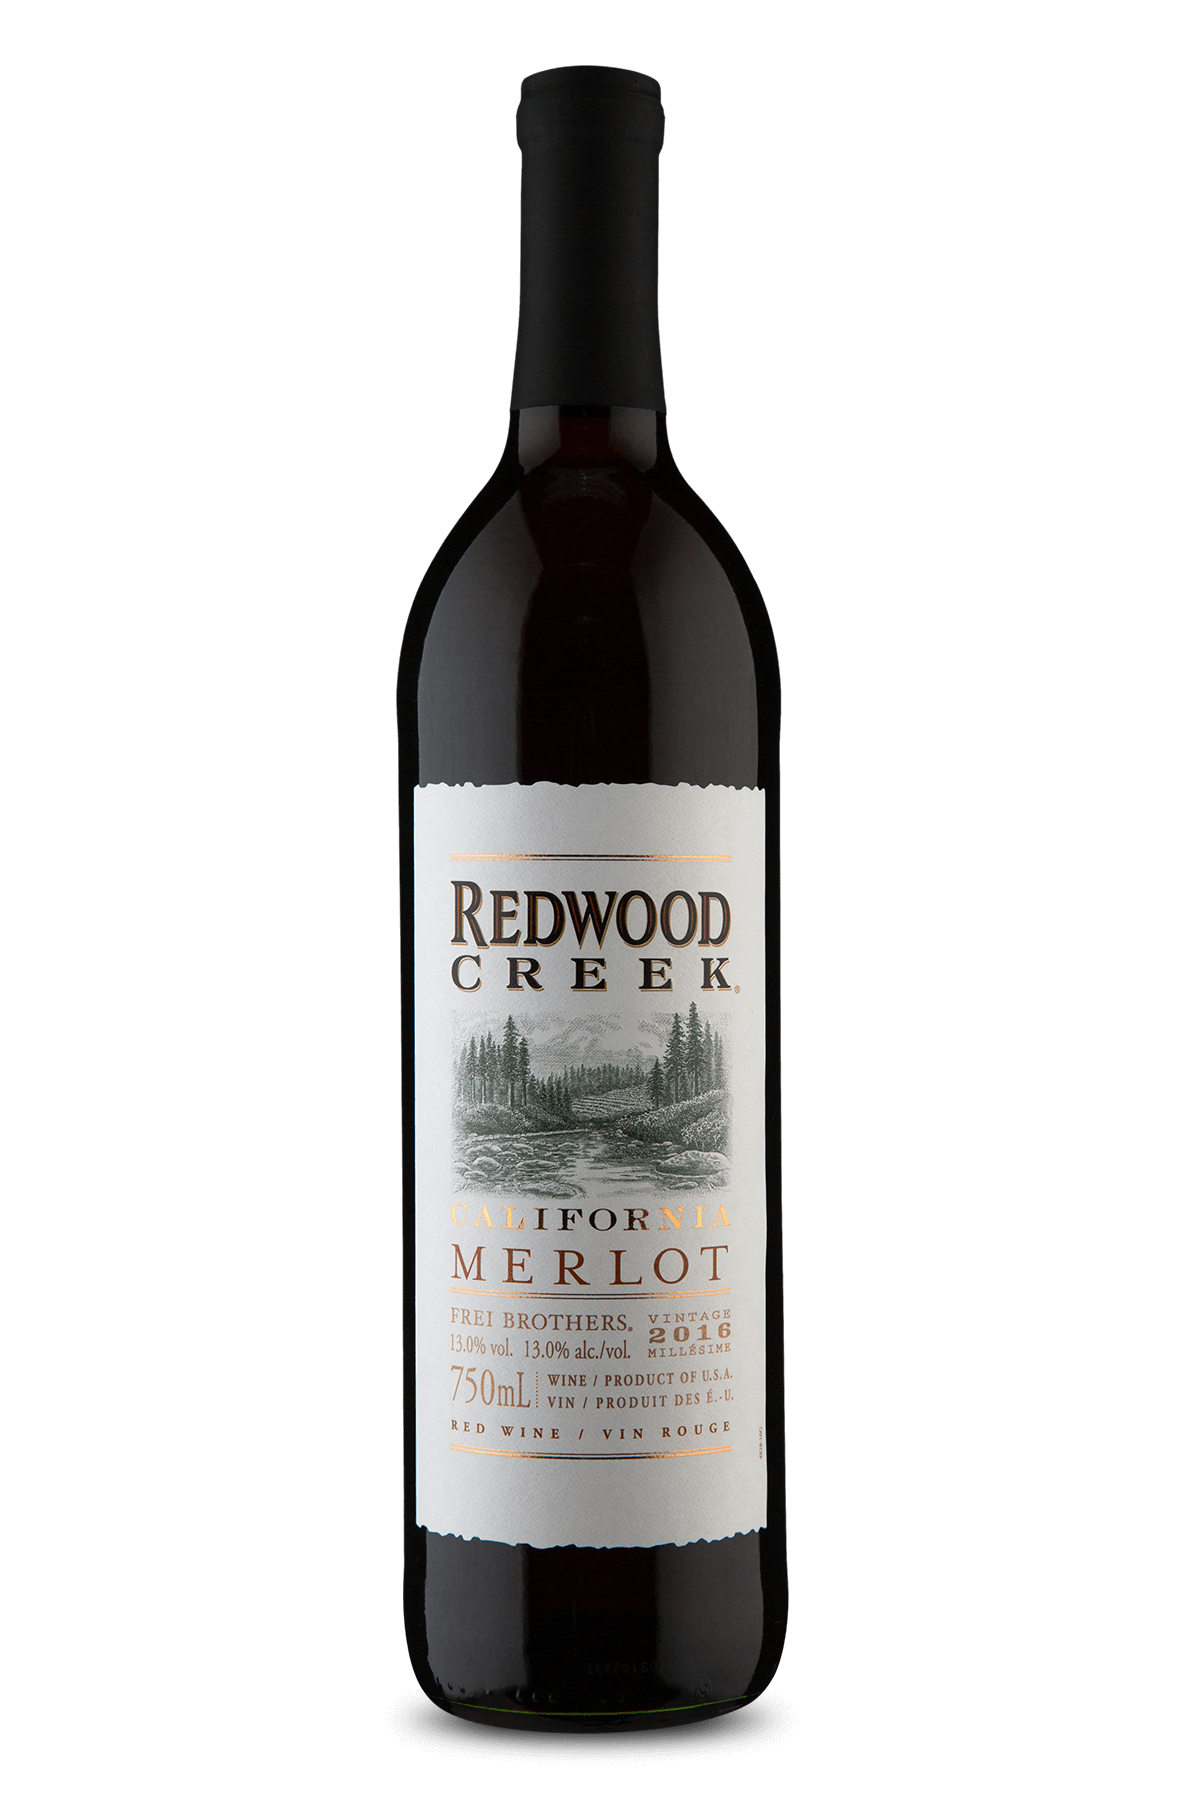 Redwood Creek Califórnia Merlot 2016